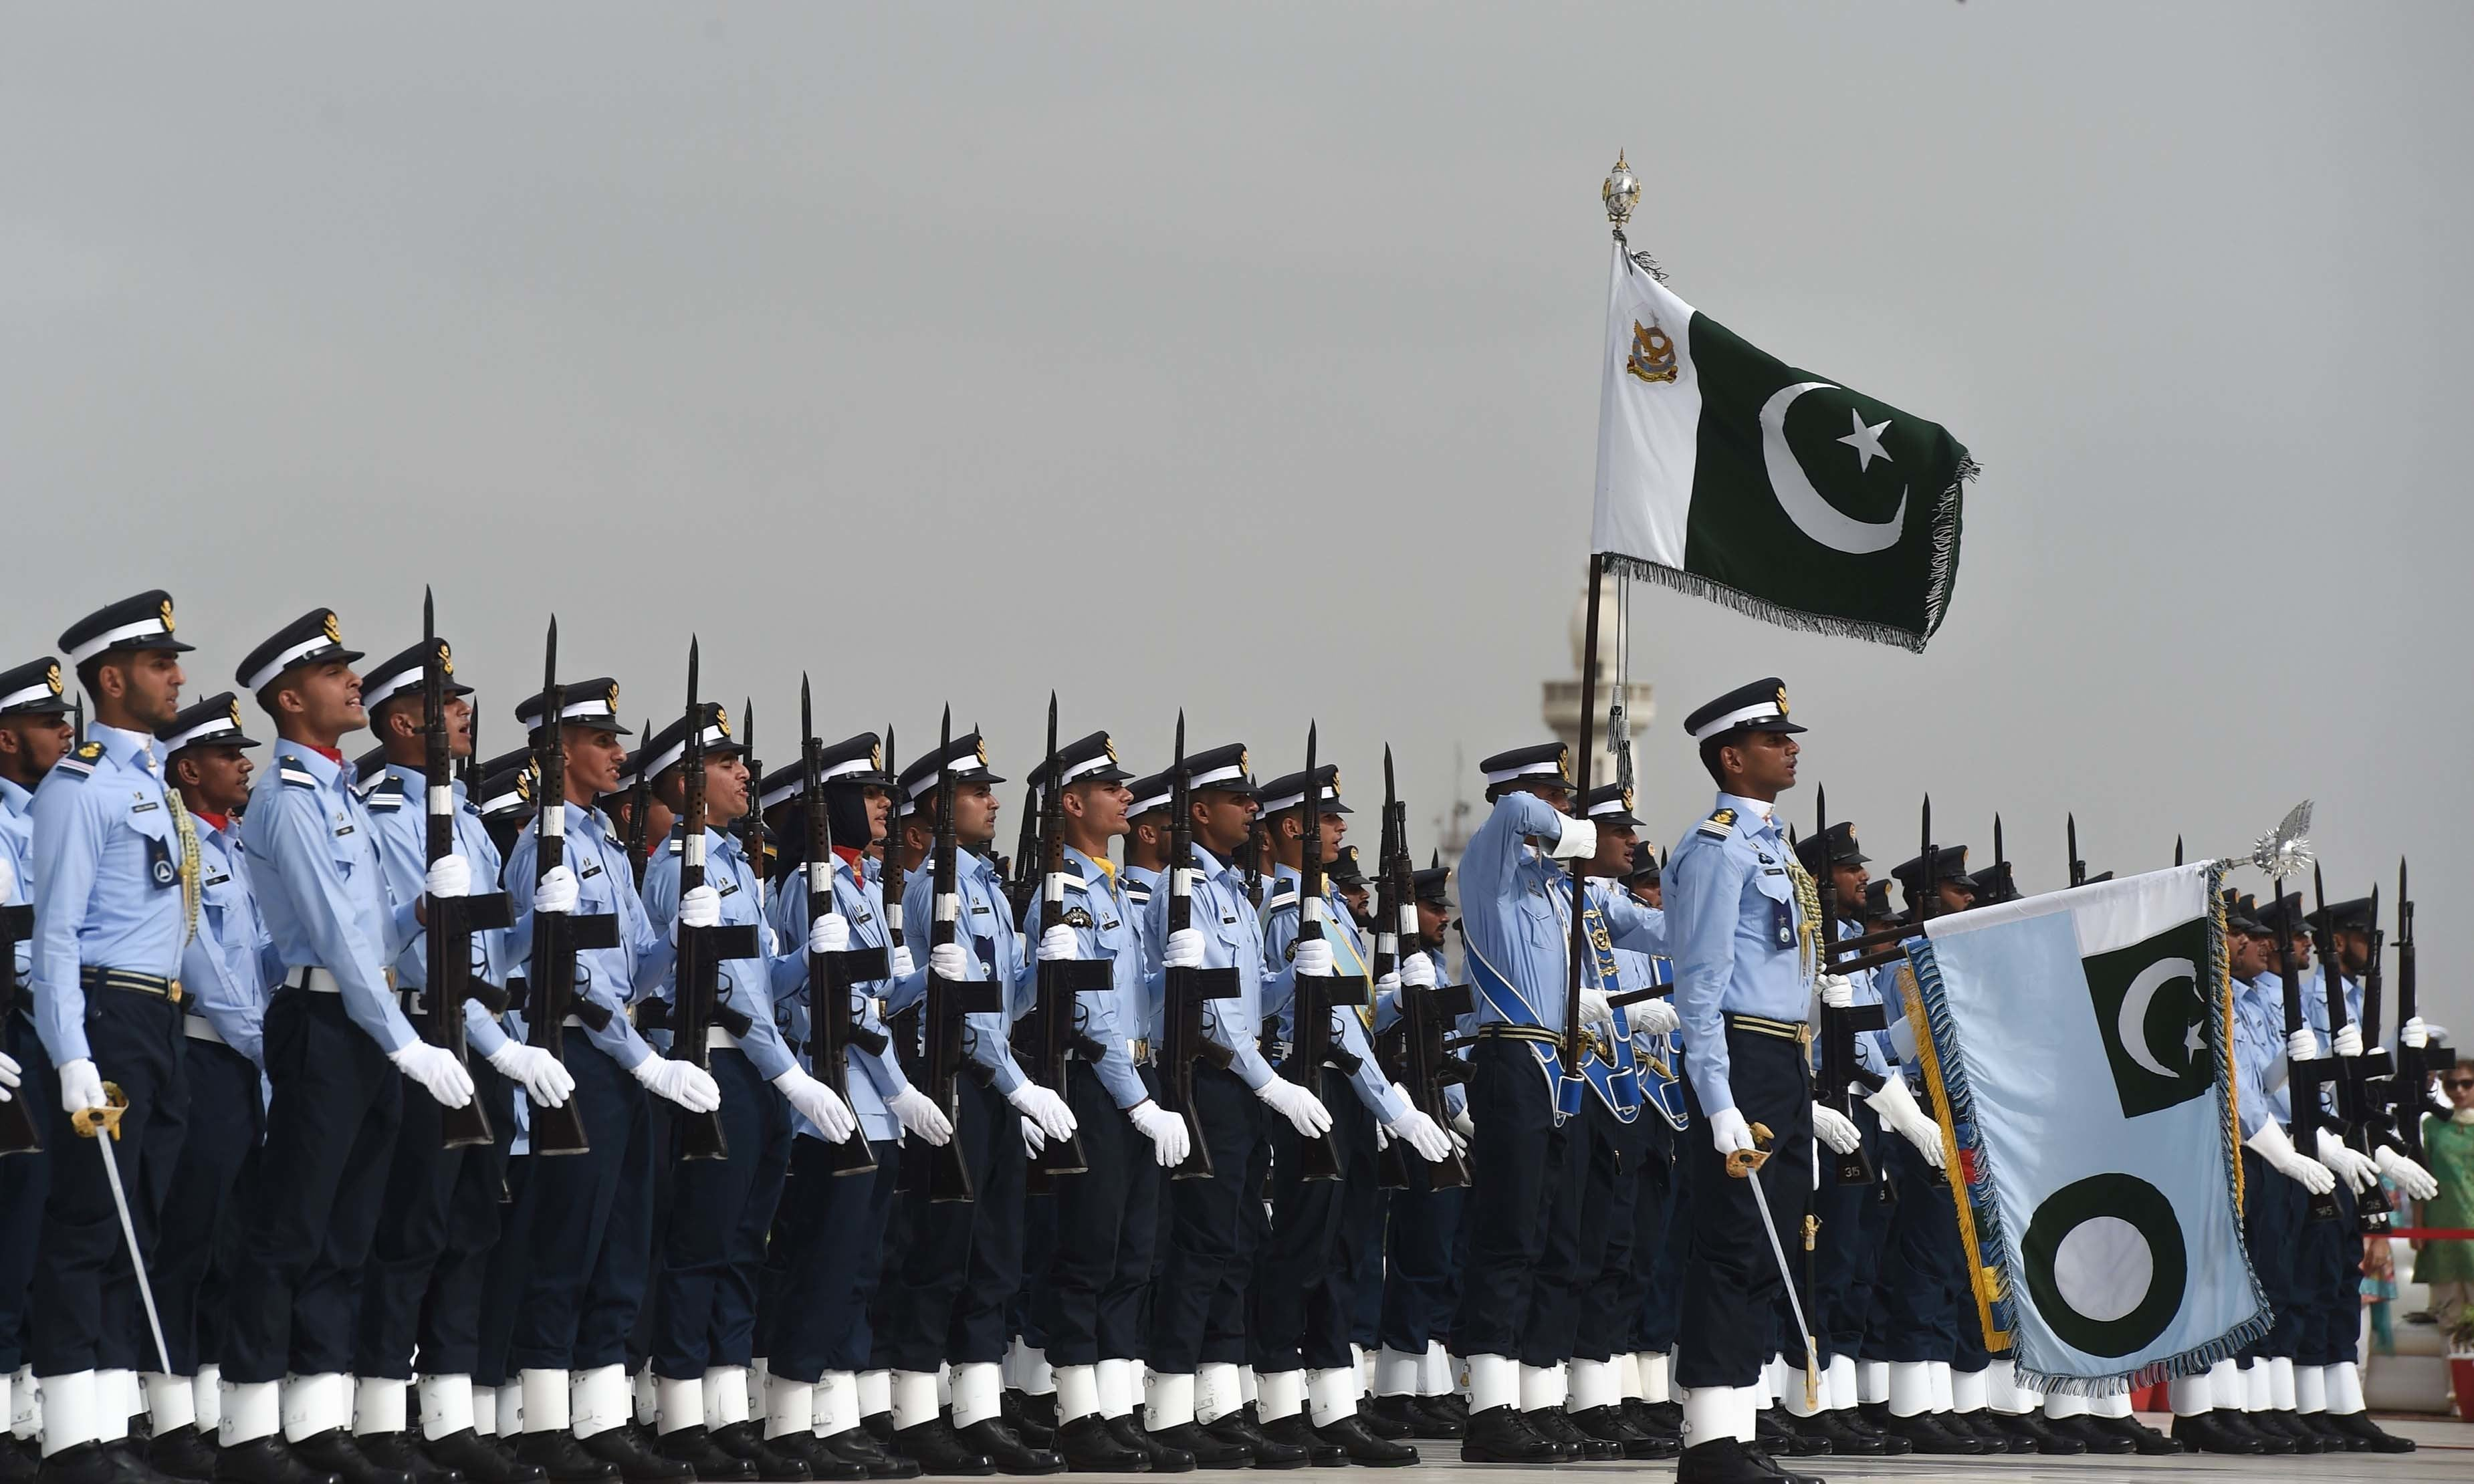 Pakistan Air Force cadets march next Quaid-i-Azam Mohammad Ali Jinnah's mausoleum. — AFP